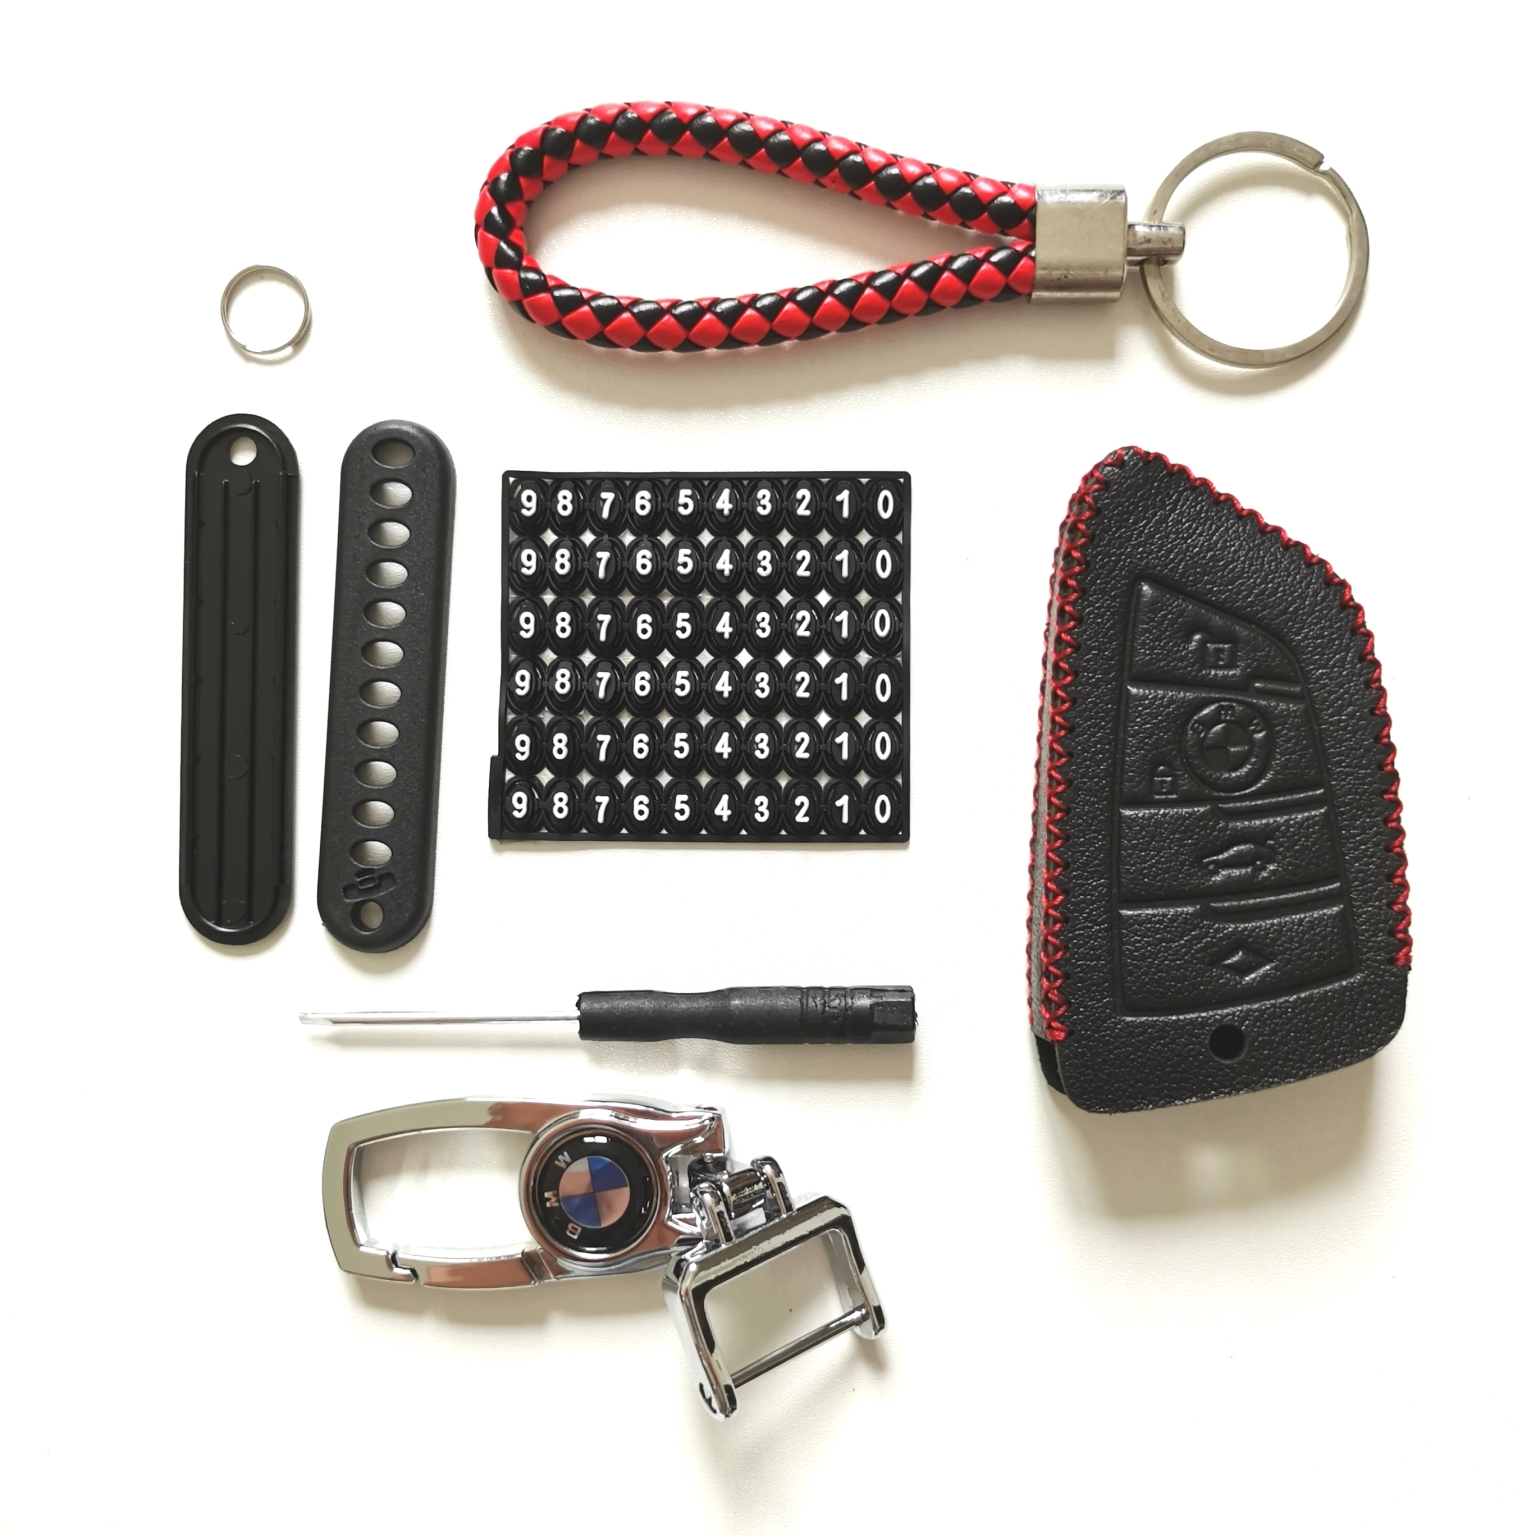 Leather Case for BMW Blade 4 Buttons Smart Card Car Key - 5 Sets